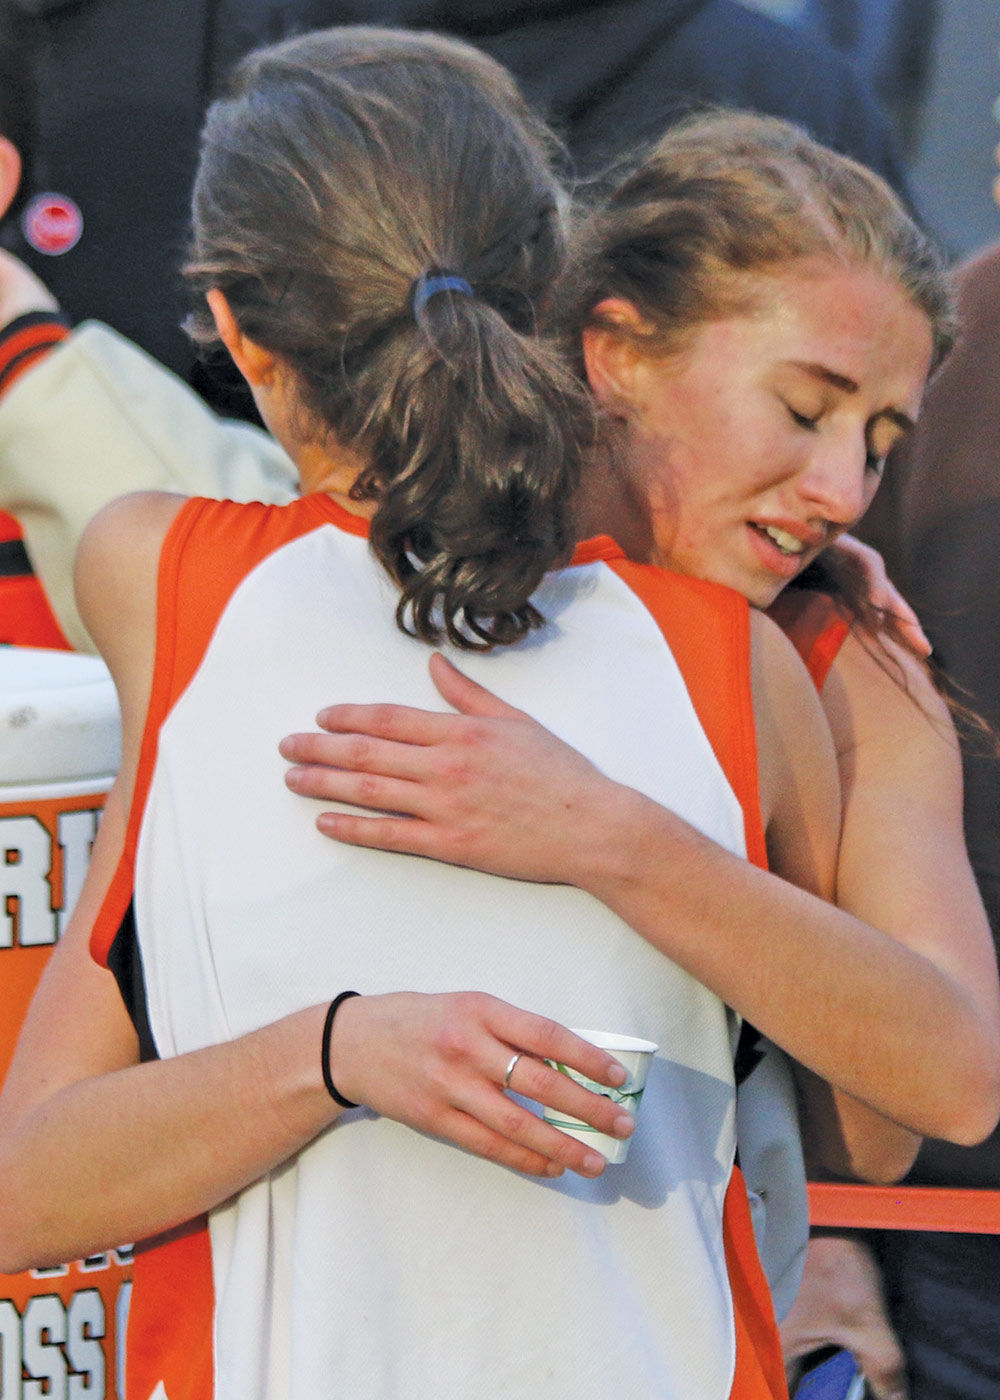 Running to state: Gatzke punches ticket to meet